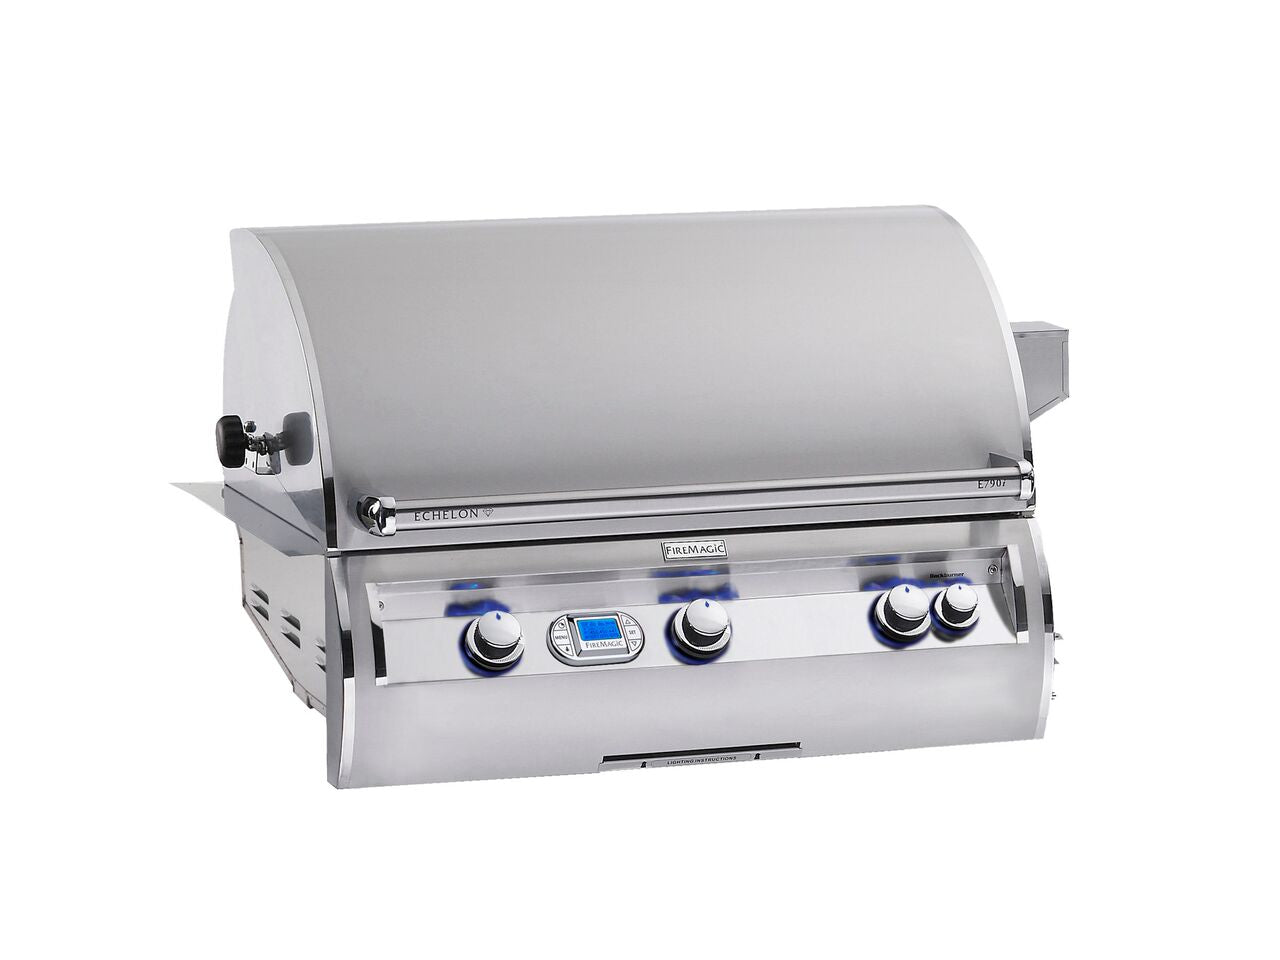 Fire Magic Echelon Built in Barbecue Grill Stainless Steel E790i - Swings and More